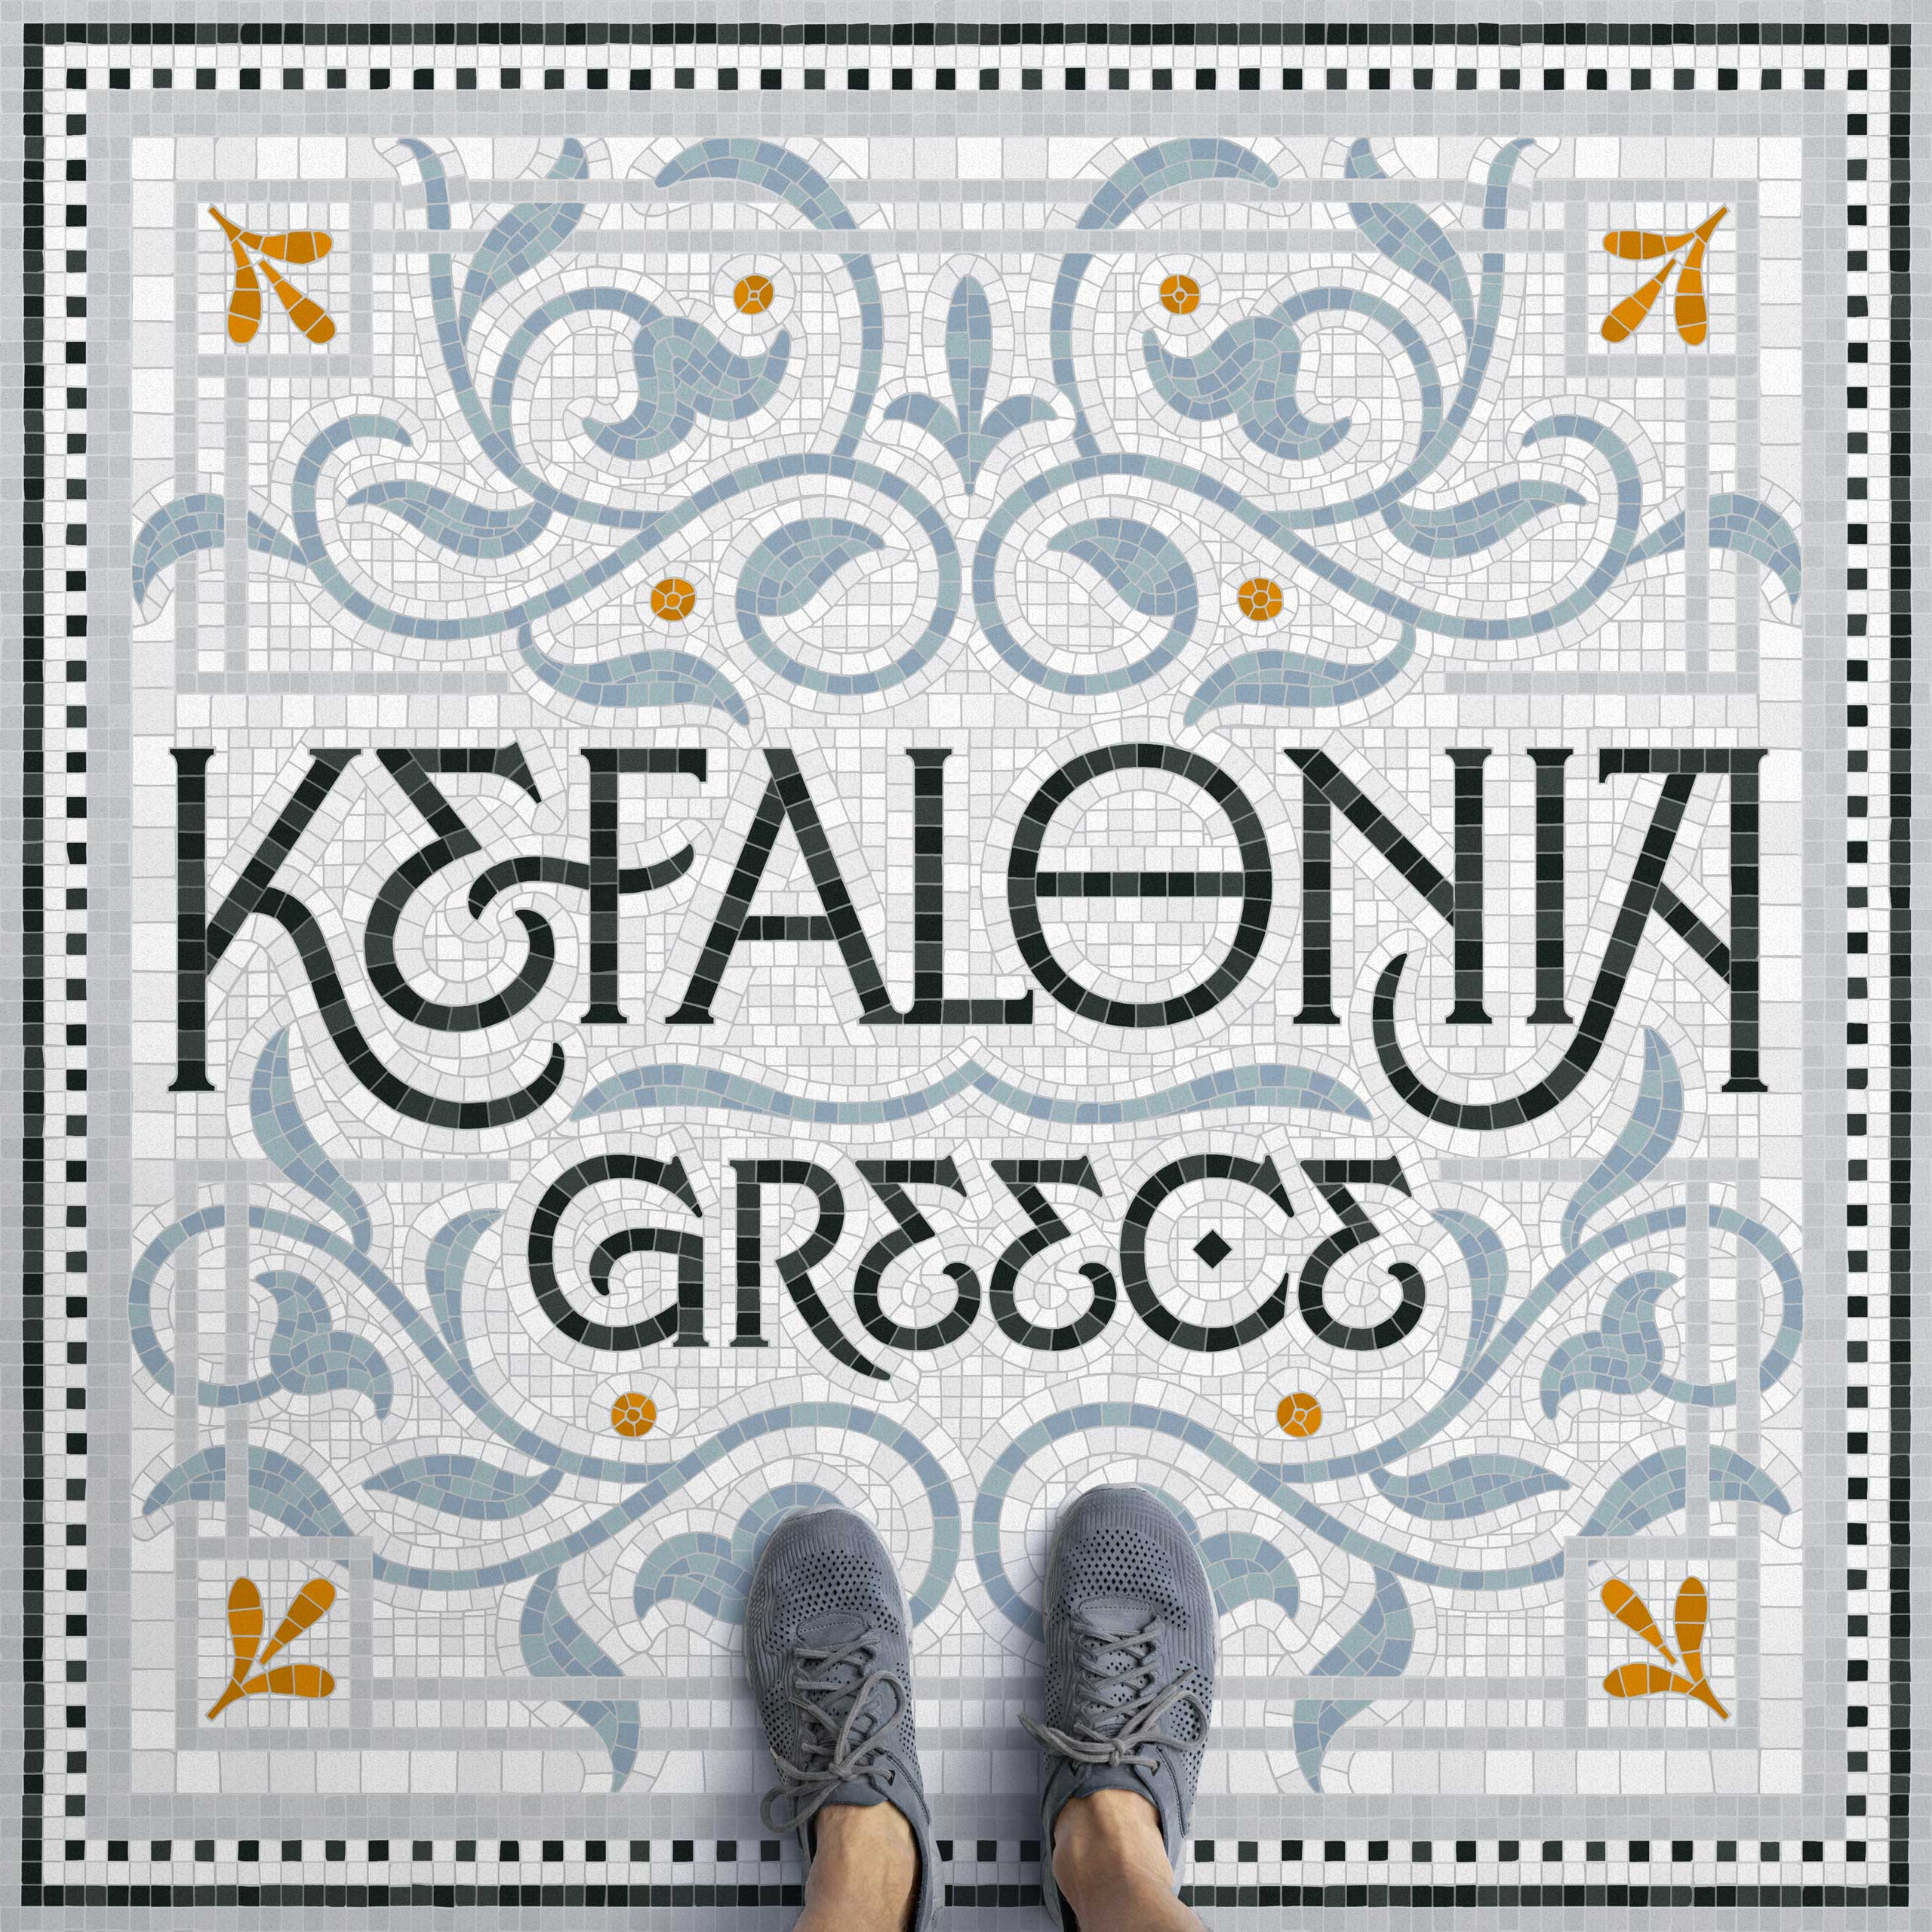 Kefalonia Lettering Fauxsaic, designed by Dan Forster